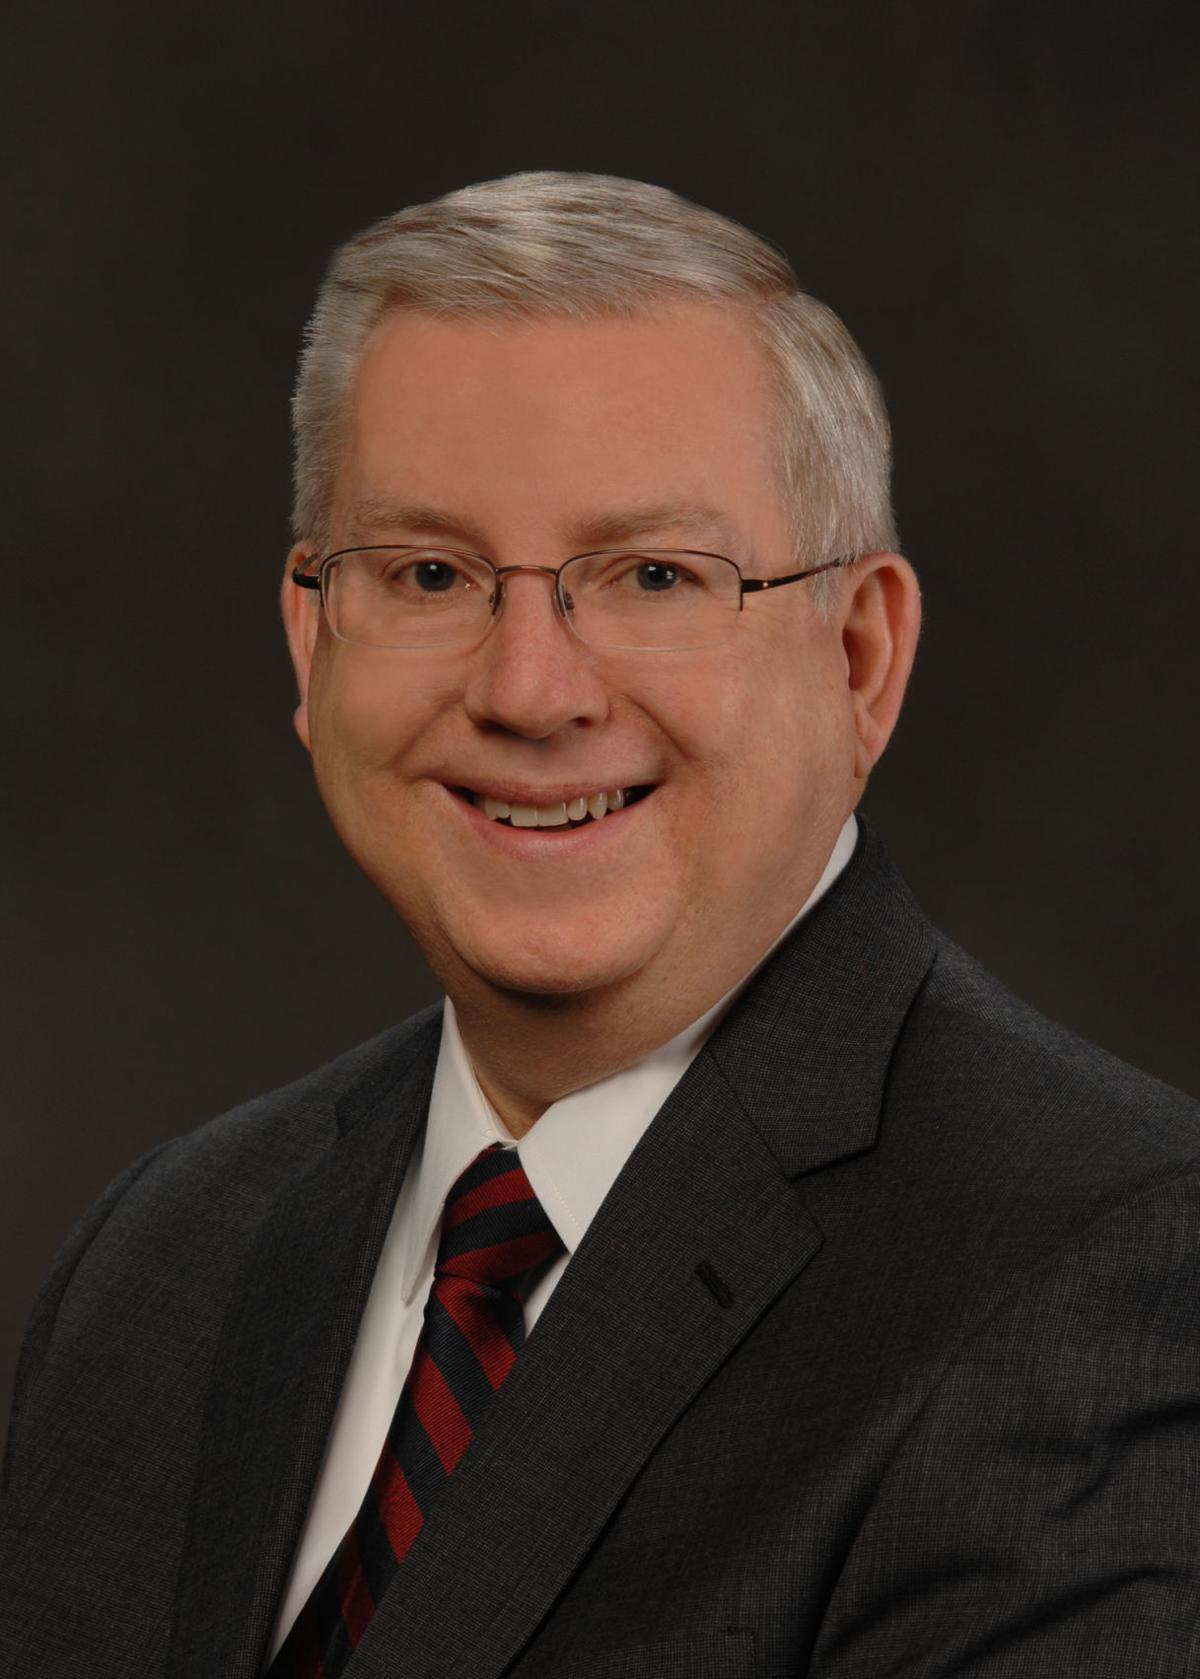 Ted Grace, director of the Southern Illinois University Carbondale Student Health Center